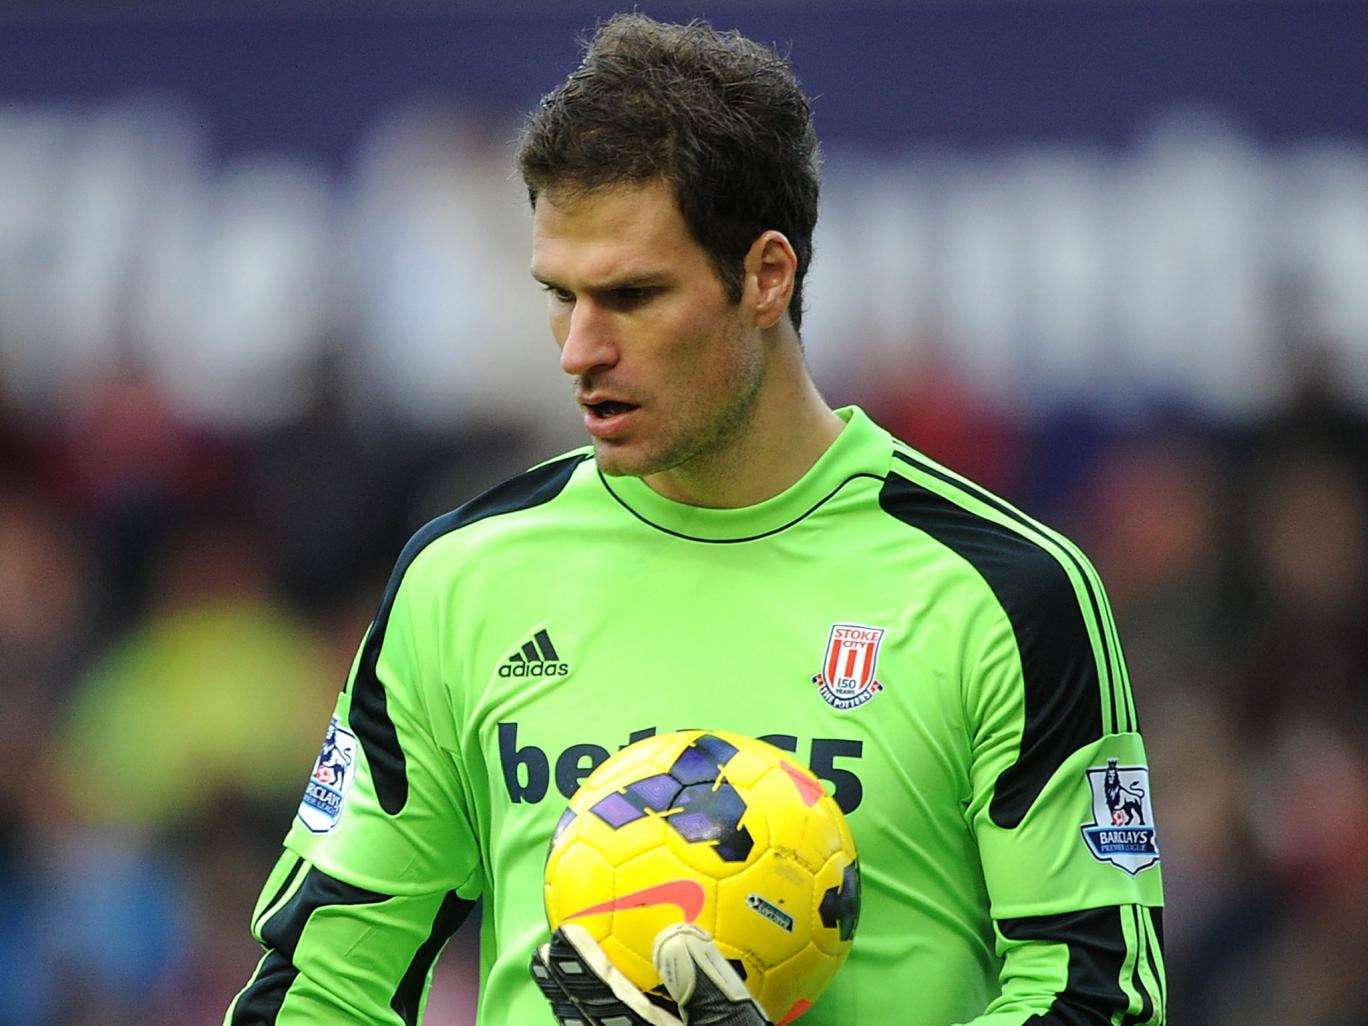 Asmir Begovic in action during Stoke's 1-1 draw with Southampton, in which he opened the scoring